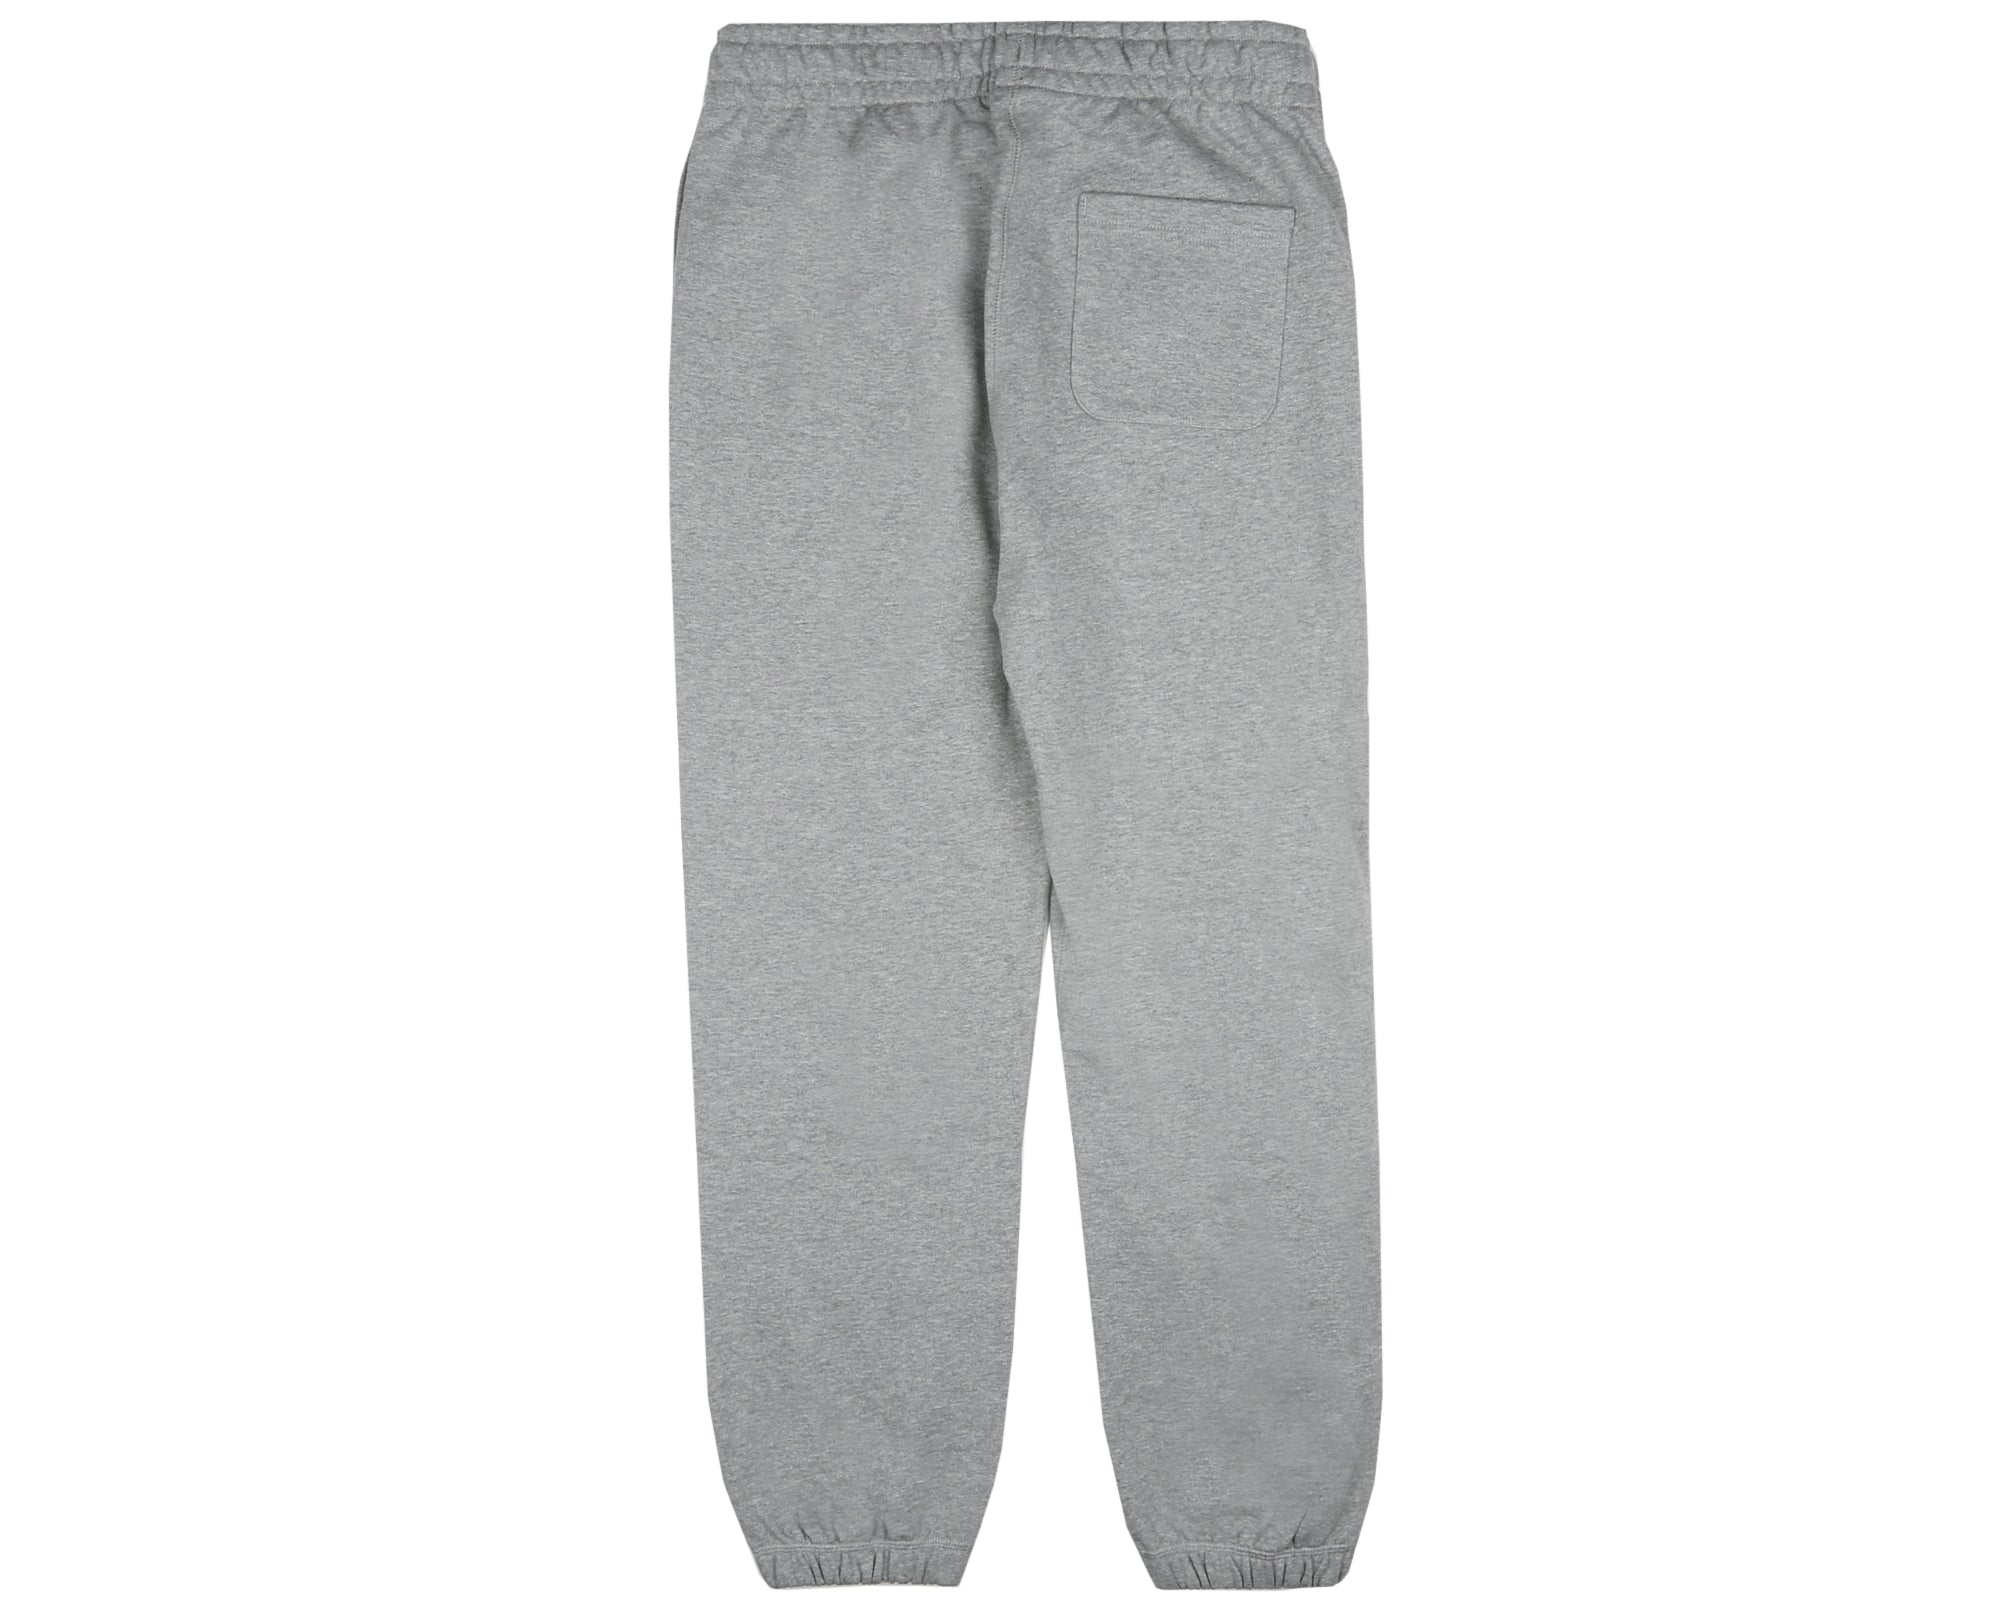 ROCKET RIOT SWEATPANT - HEATHER GREY